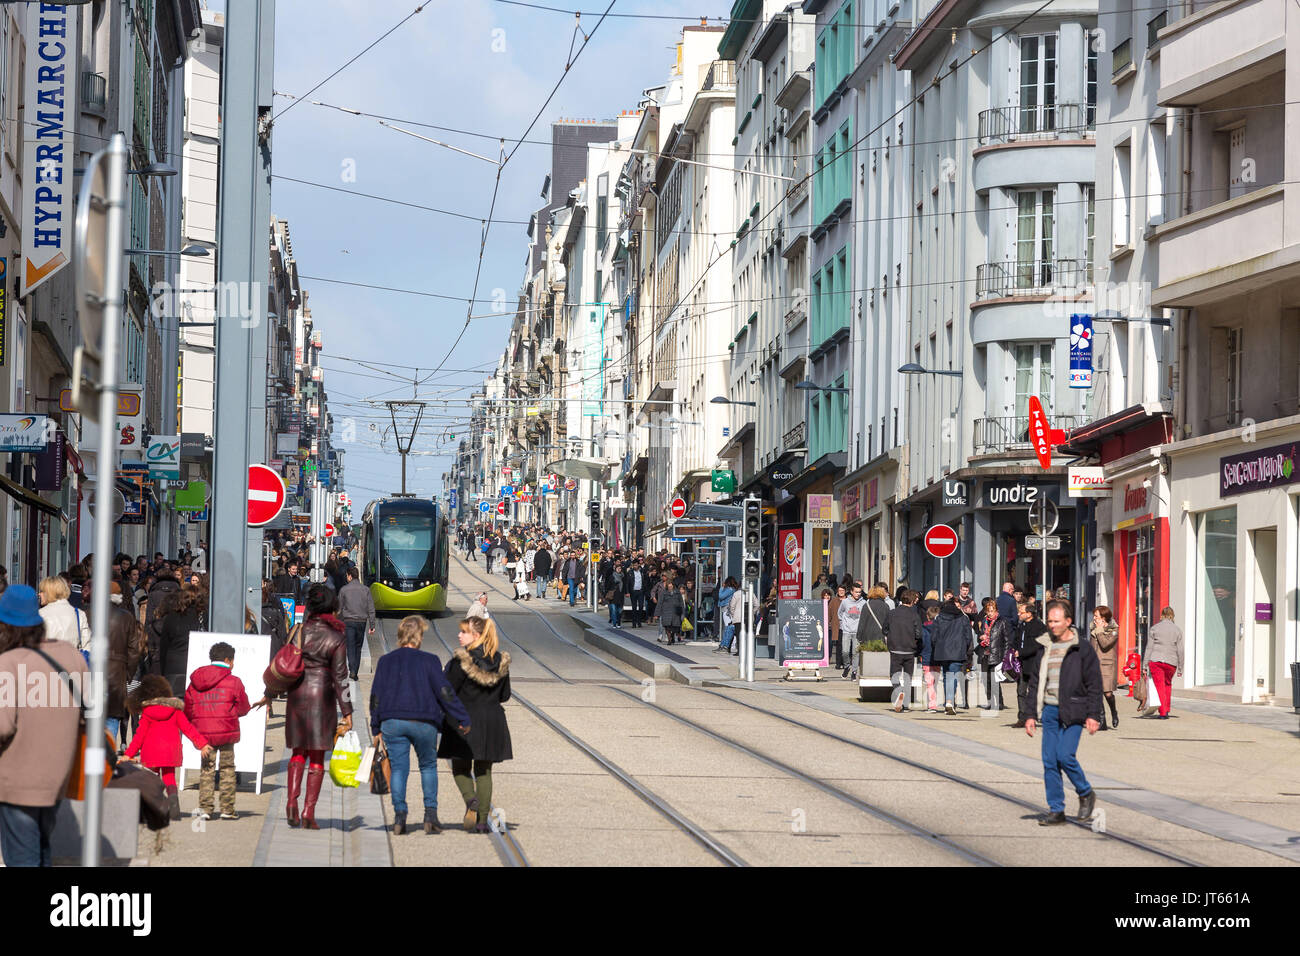 Brest (Brittany, north-western France): tram and pedestrians in the street 'rue Jean Jaures', in downtown Brest. Passers-by, tram and buildings along  - Stock Image